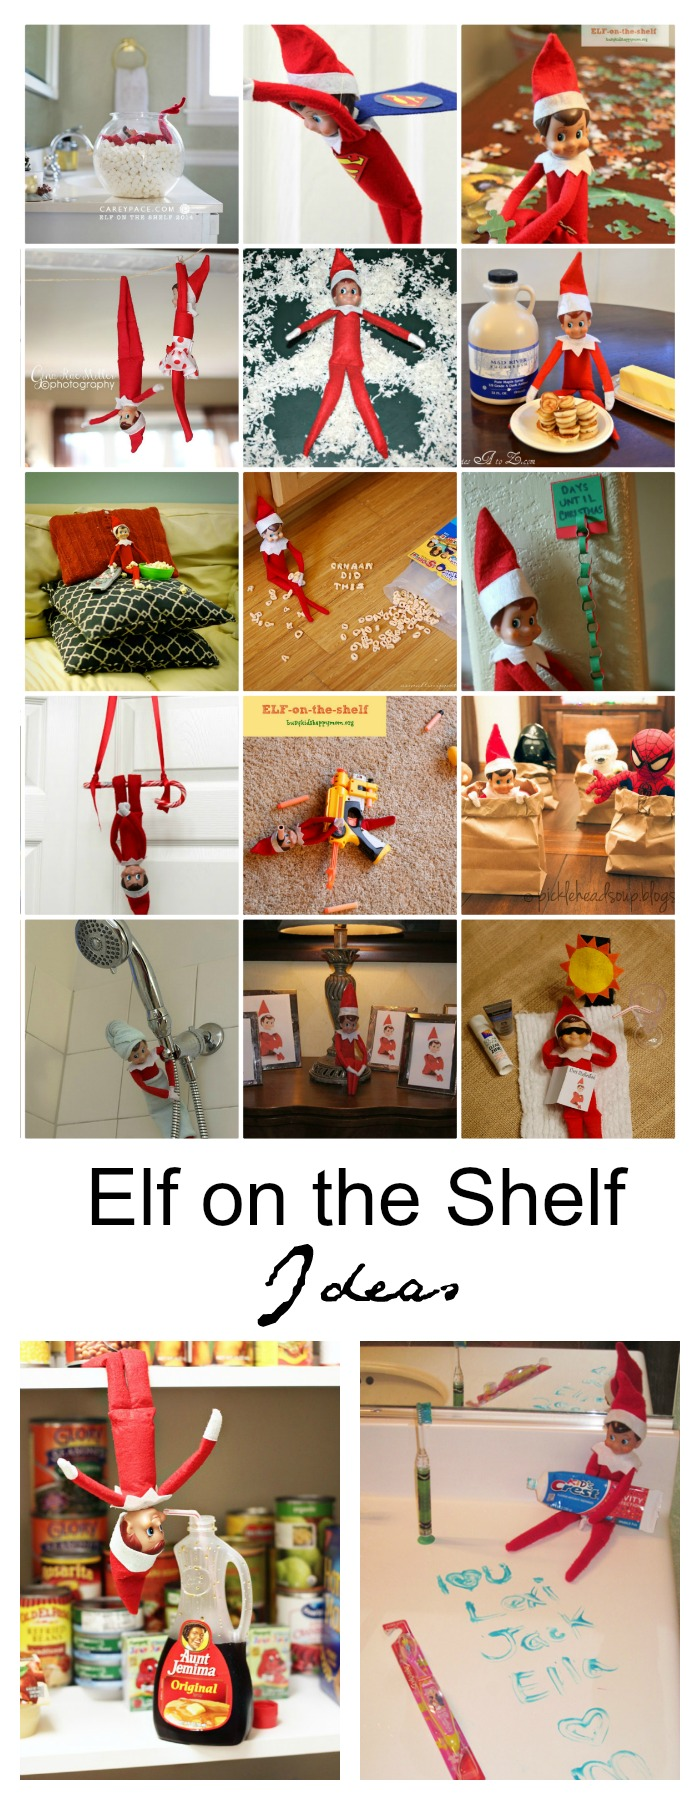 Elf-on-the-shelf-ideas | Sharing 25 creative Elf on the Shelf Ideas that your family are sure to look forward to and bring a smile to their faces each day.